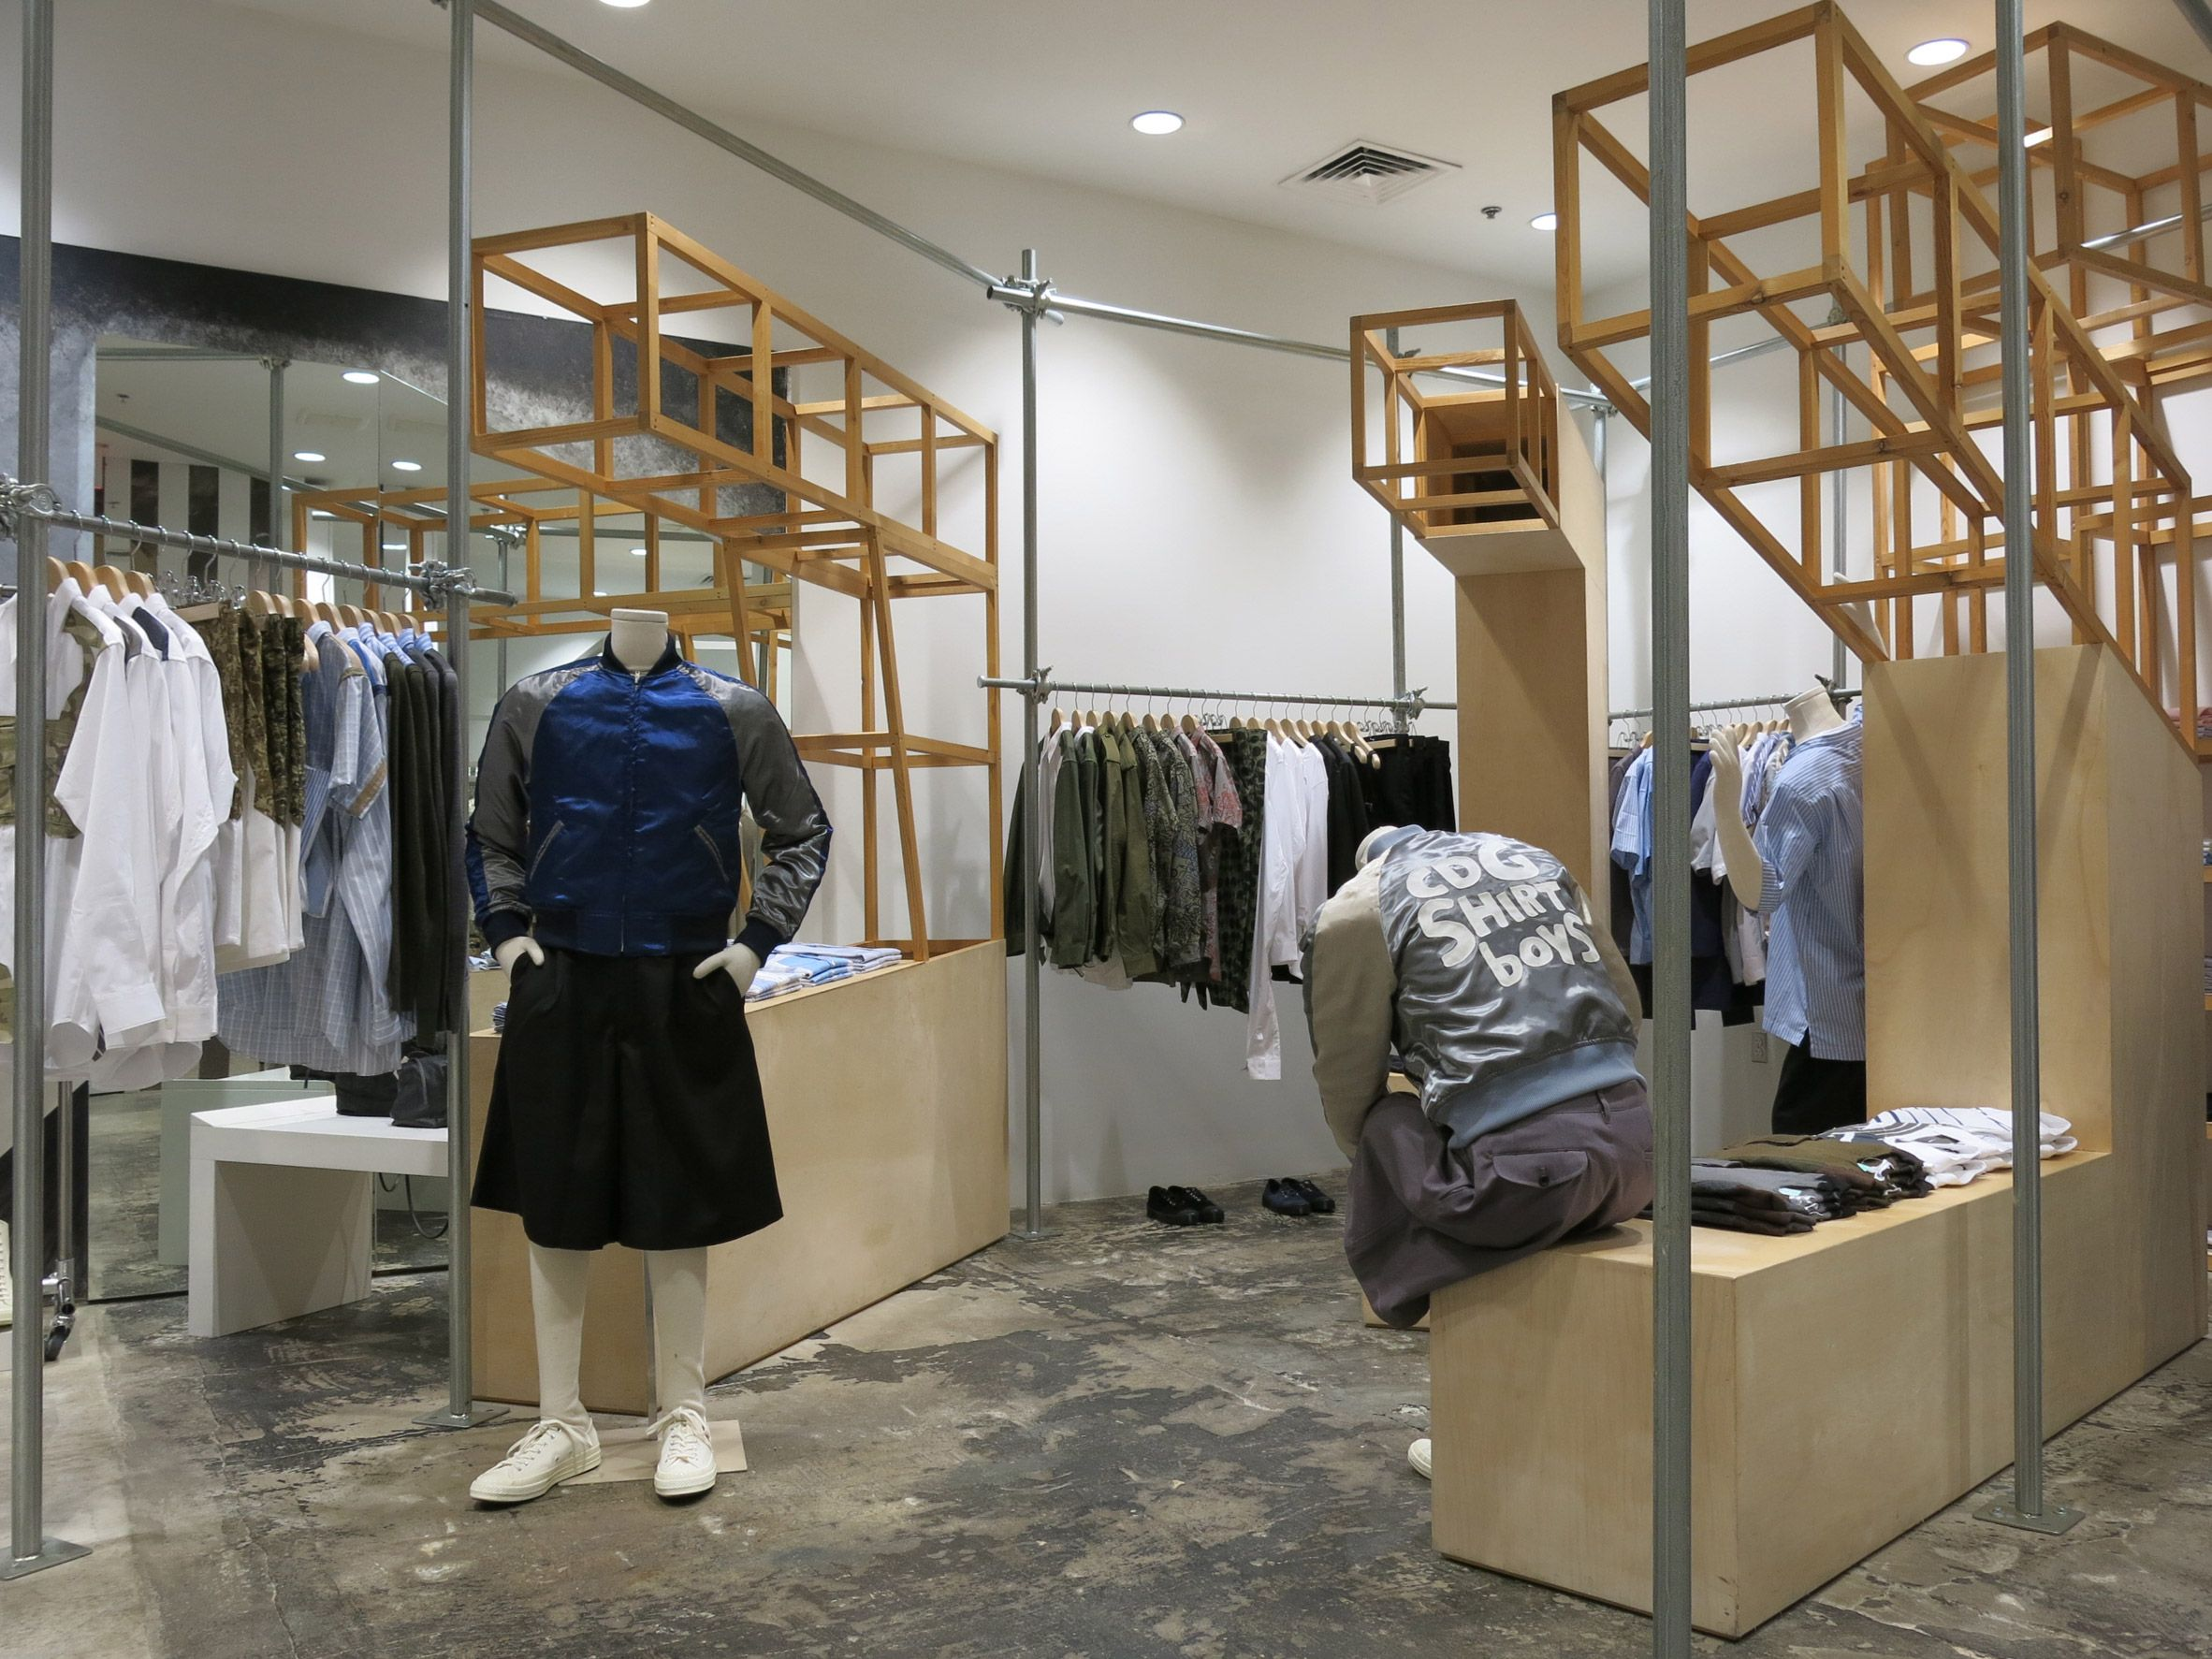 787e8d6d02 The New York multi-brand fashion store run by Comme des Garçons has  received a makeover